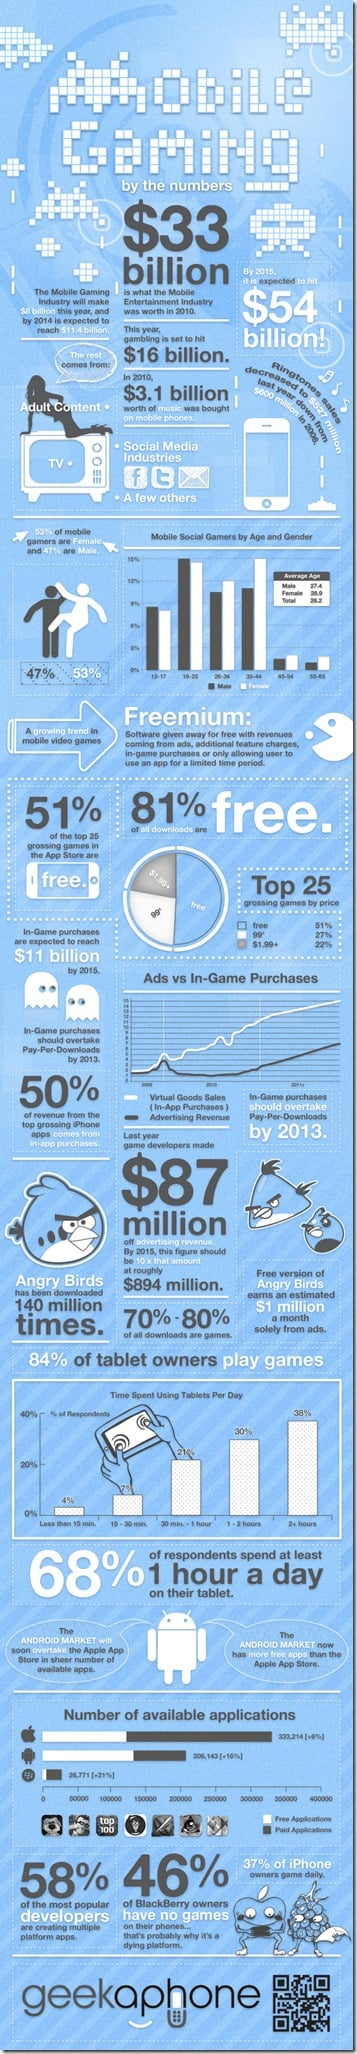 Infographic: The Reach and Impact of Mobile Gaming